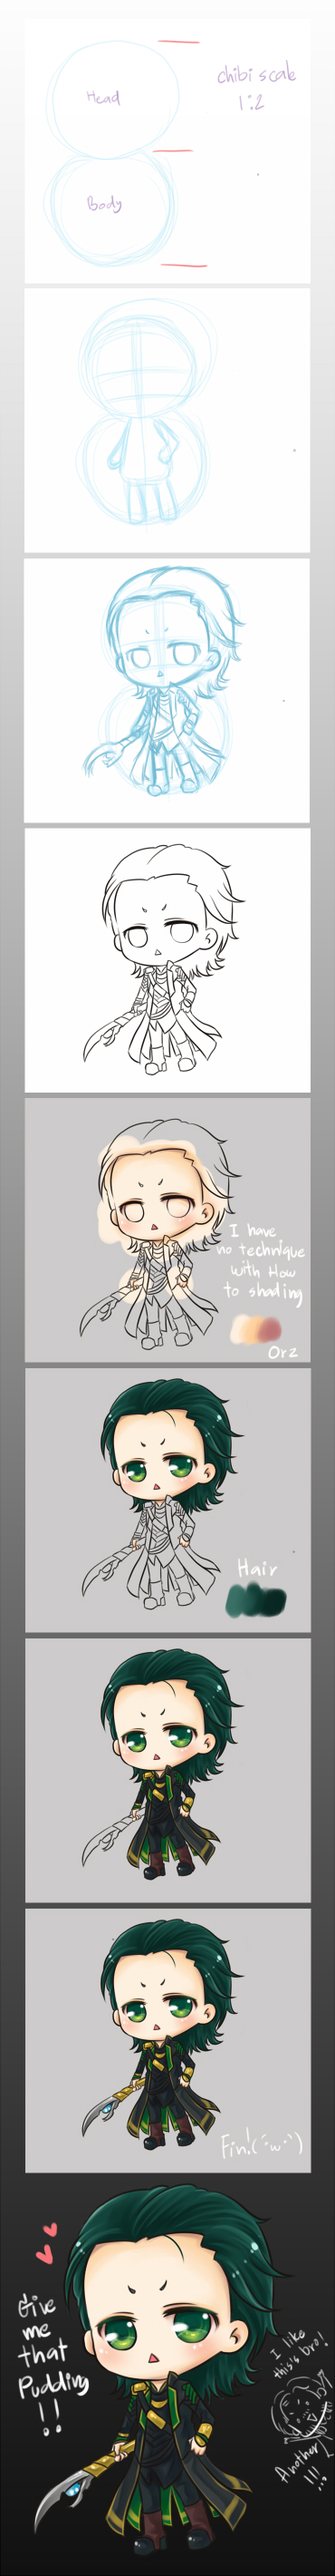 :Loki:How to draw chibi Loki by PrinceOfRedroses